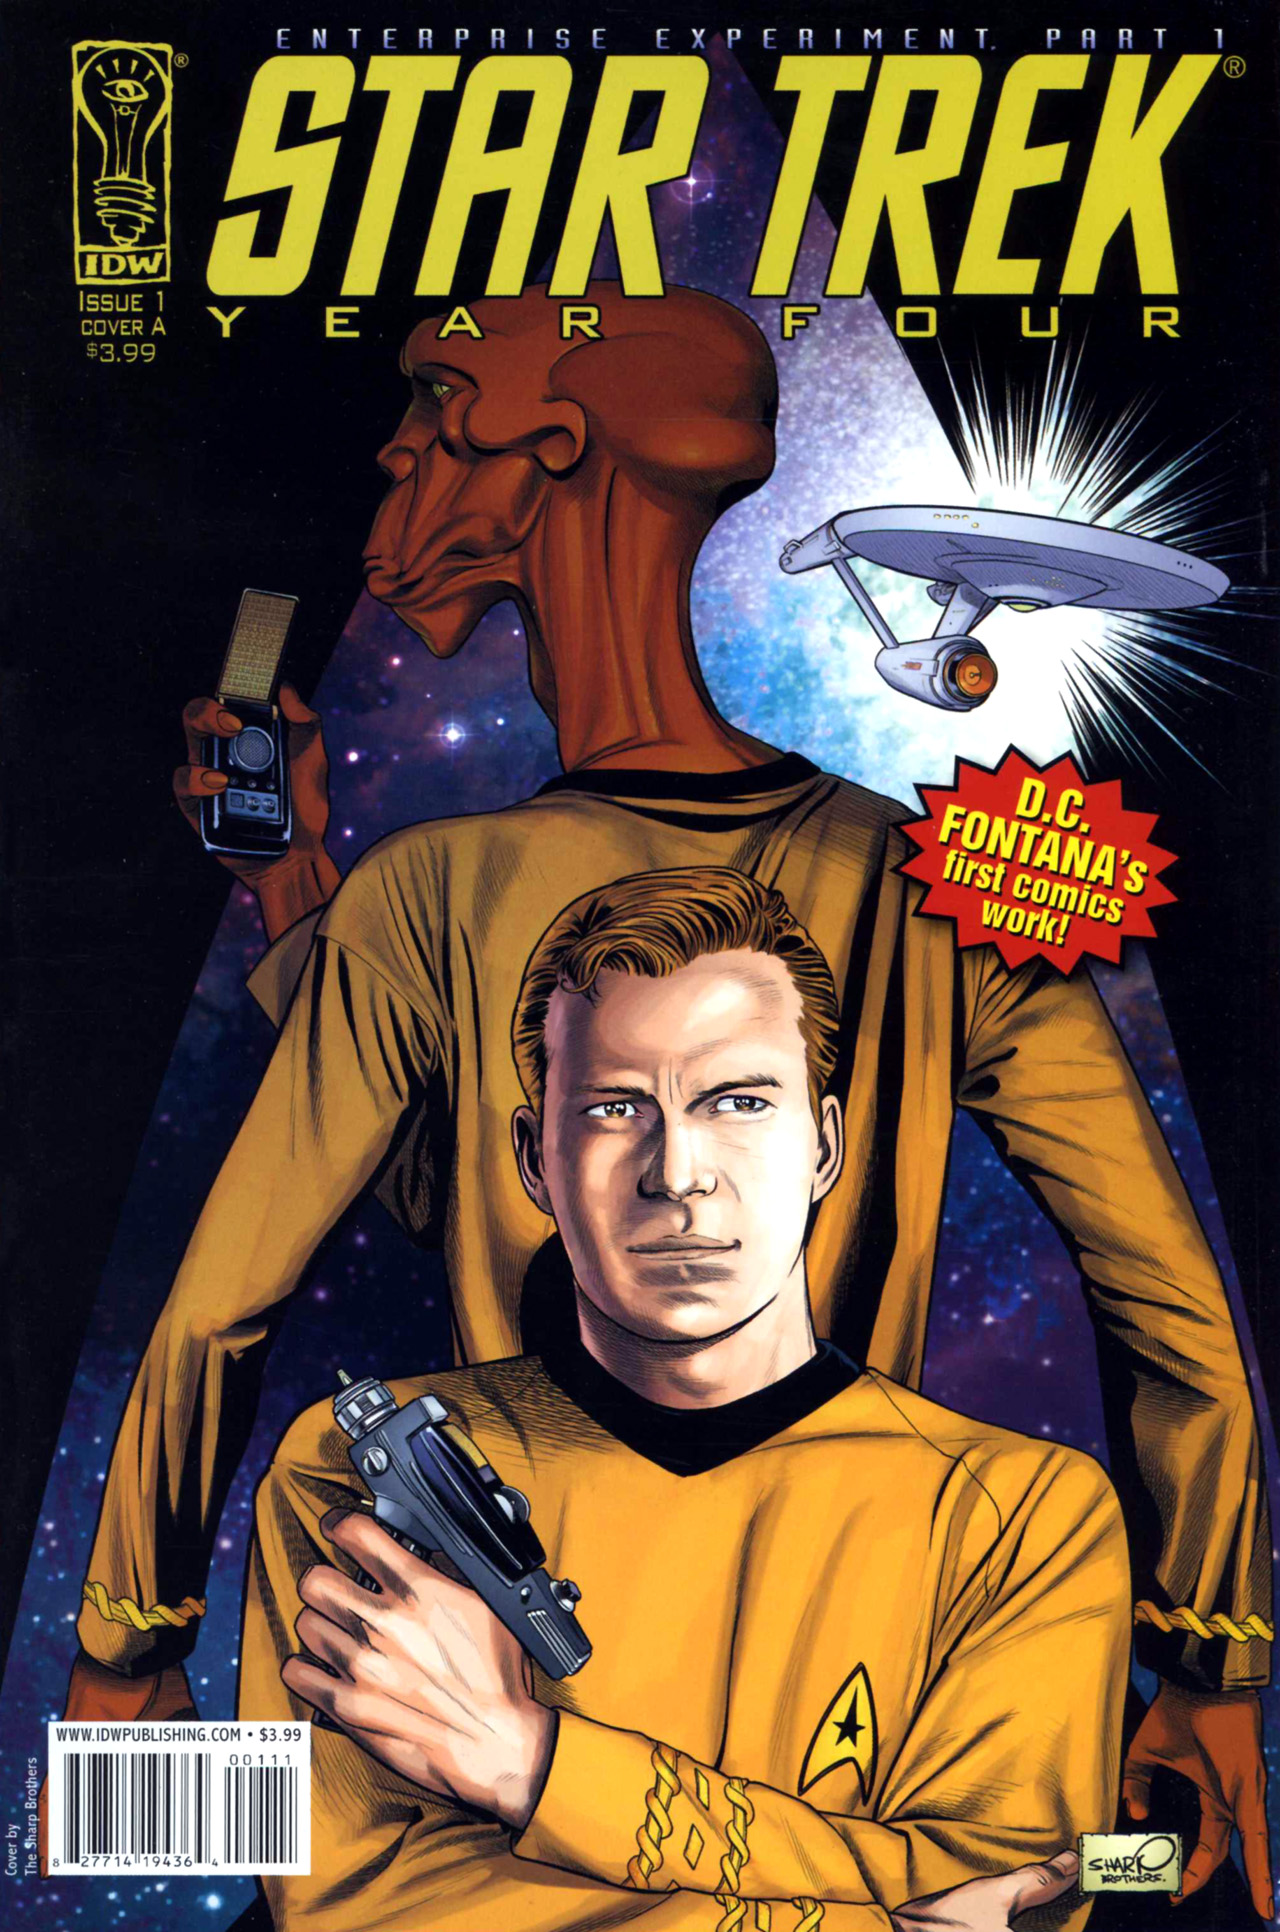 Star Trek Year Four: The Enterprise Experiment 1 Page 1